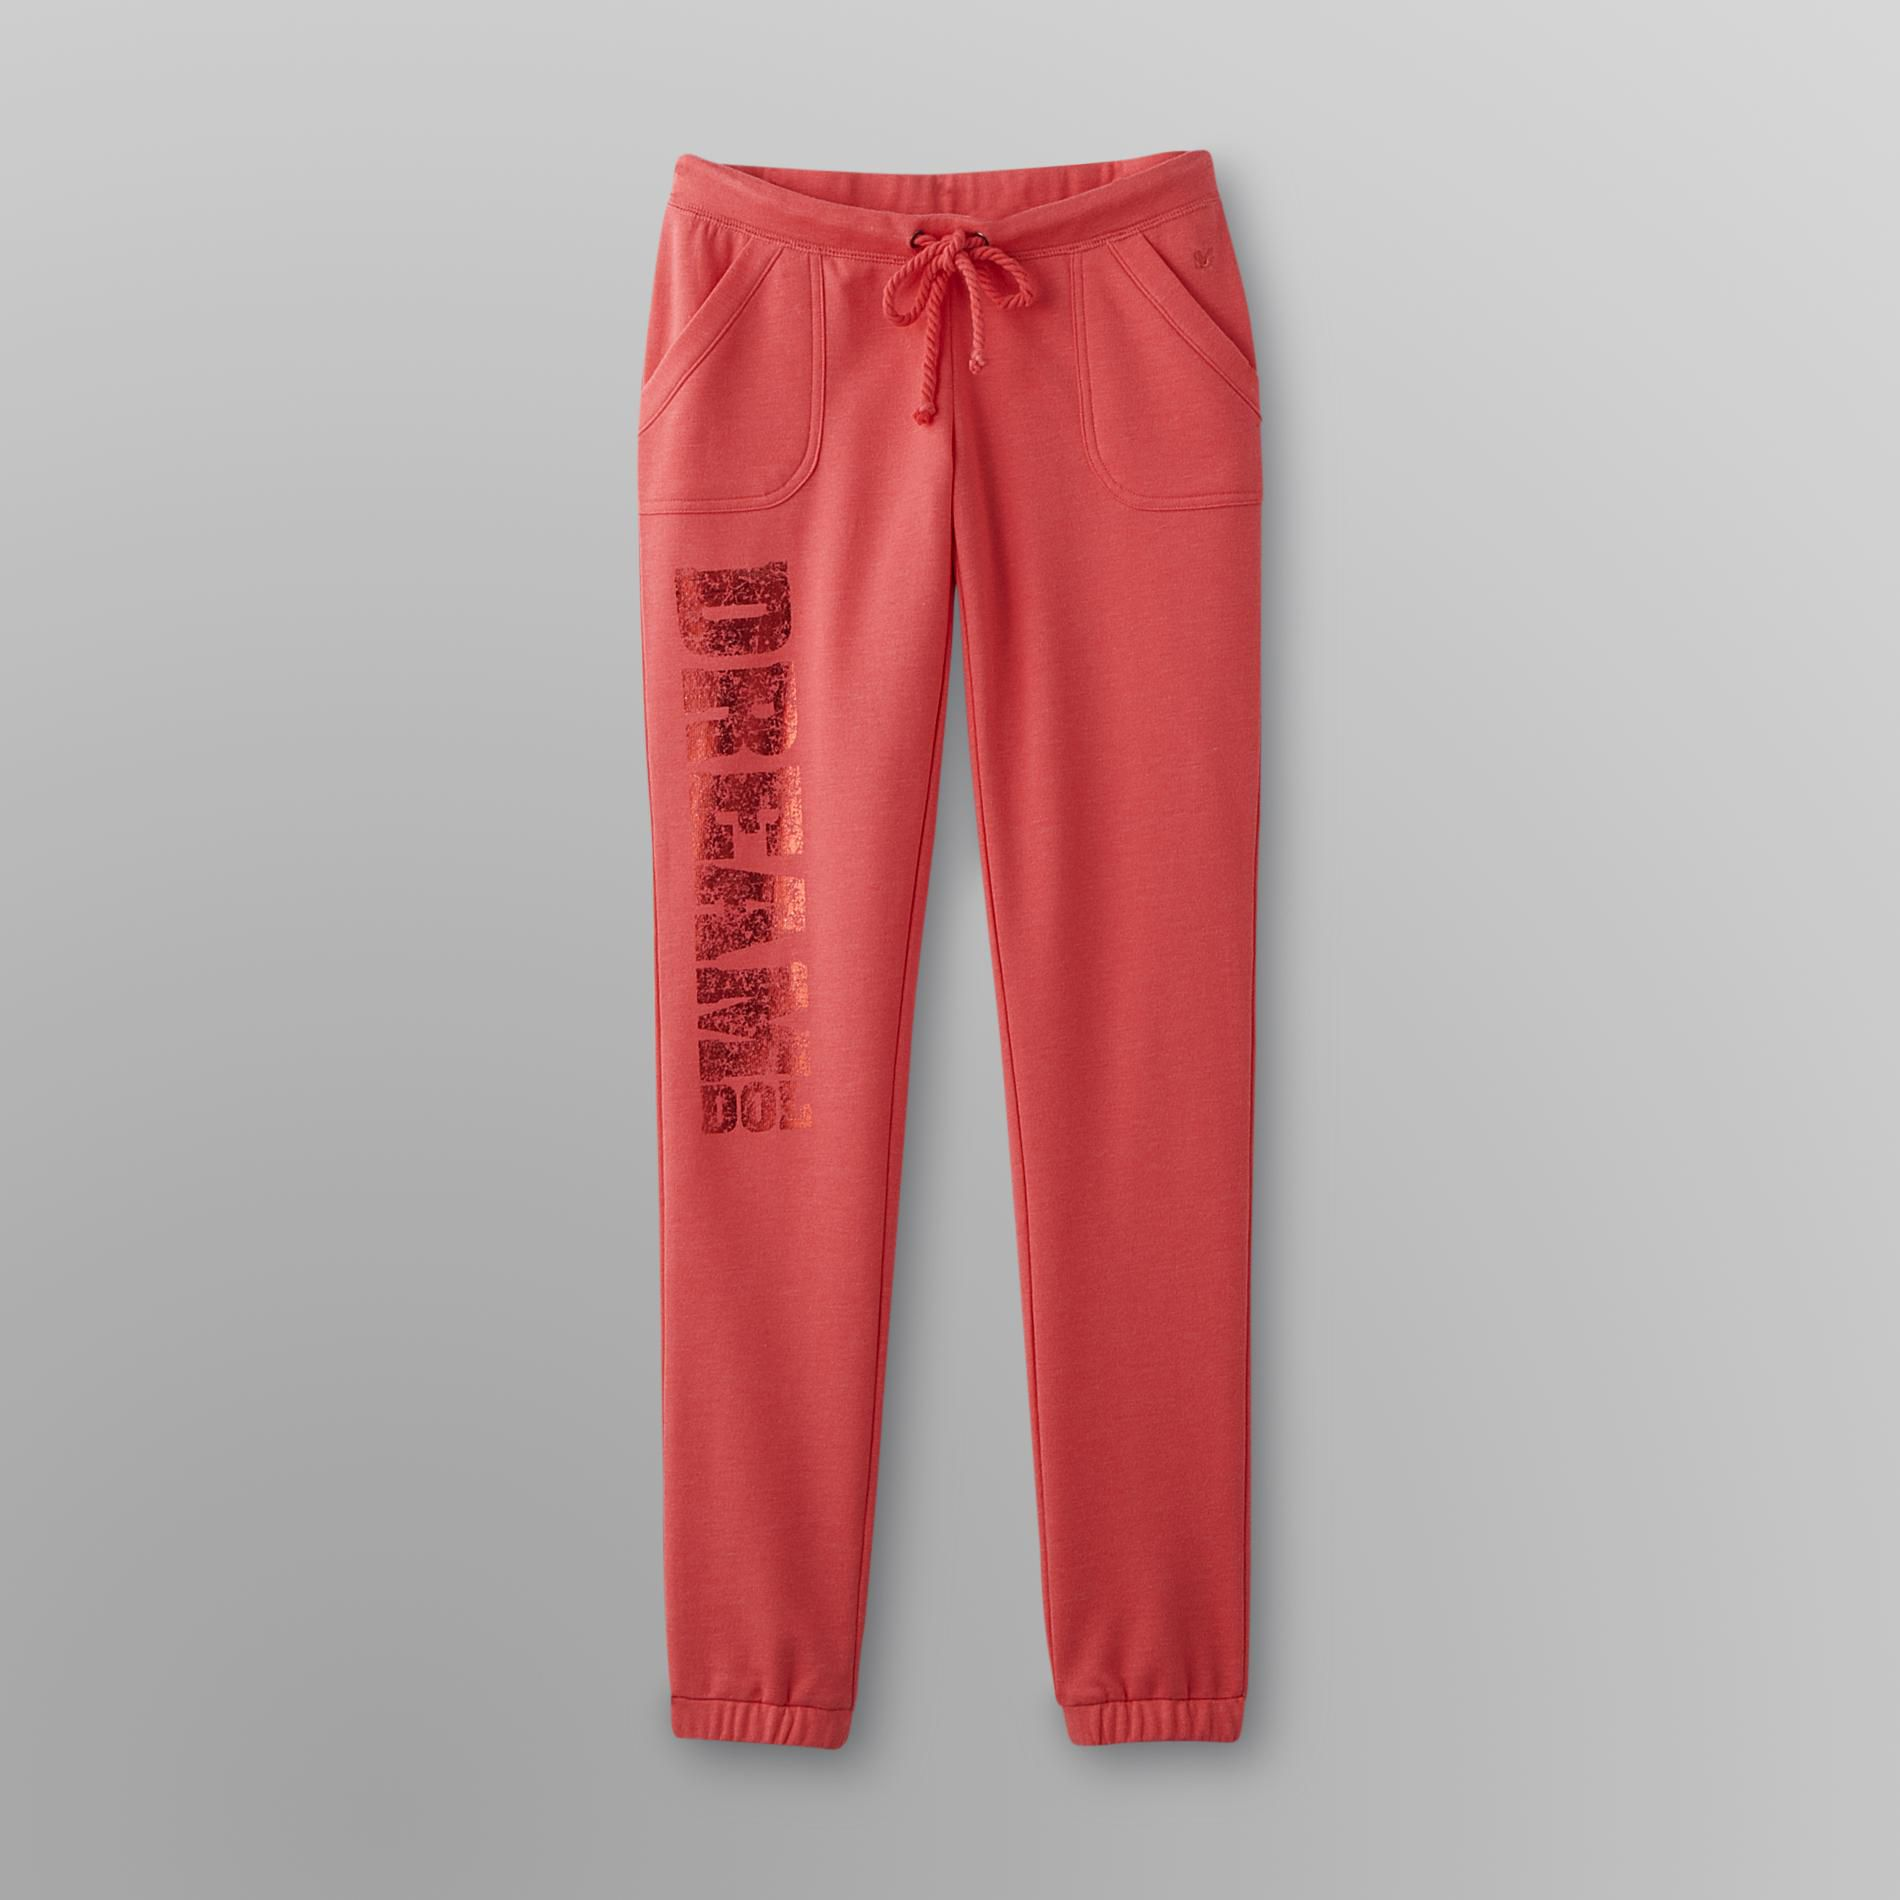 Dream Out Loud by Selena Gomez Junior's Vintage Sweatpants at Kmart.com